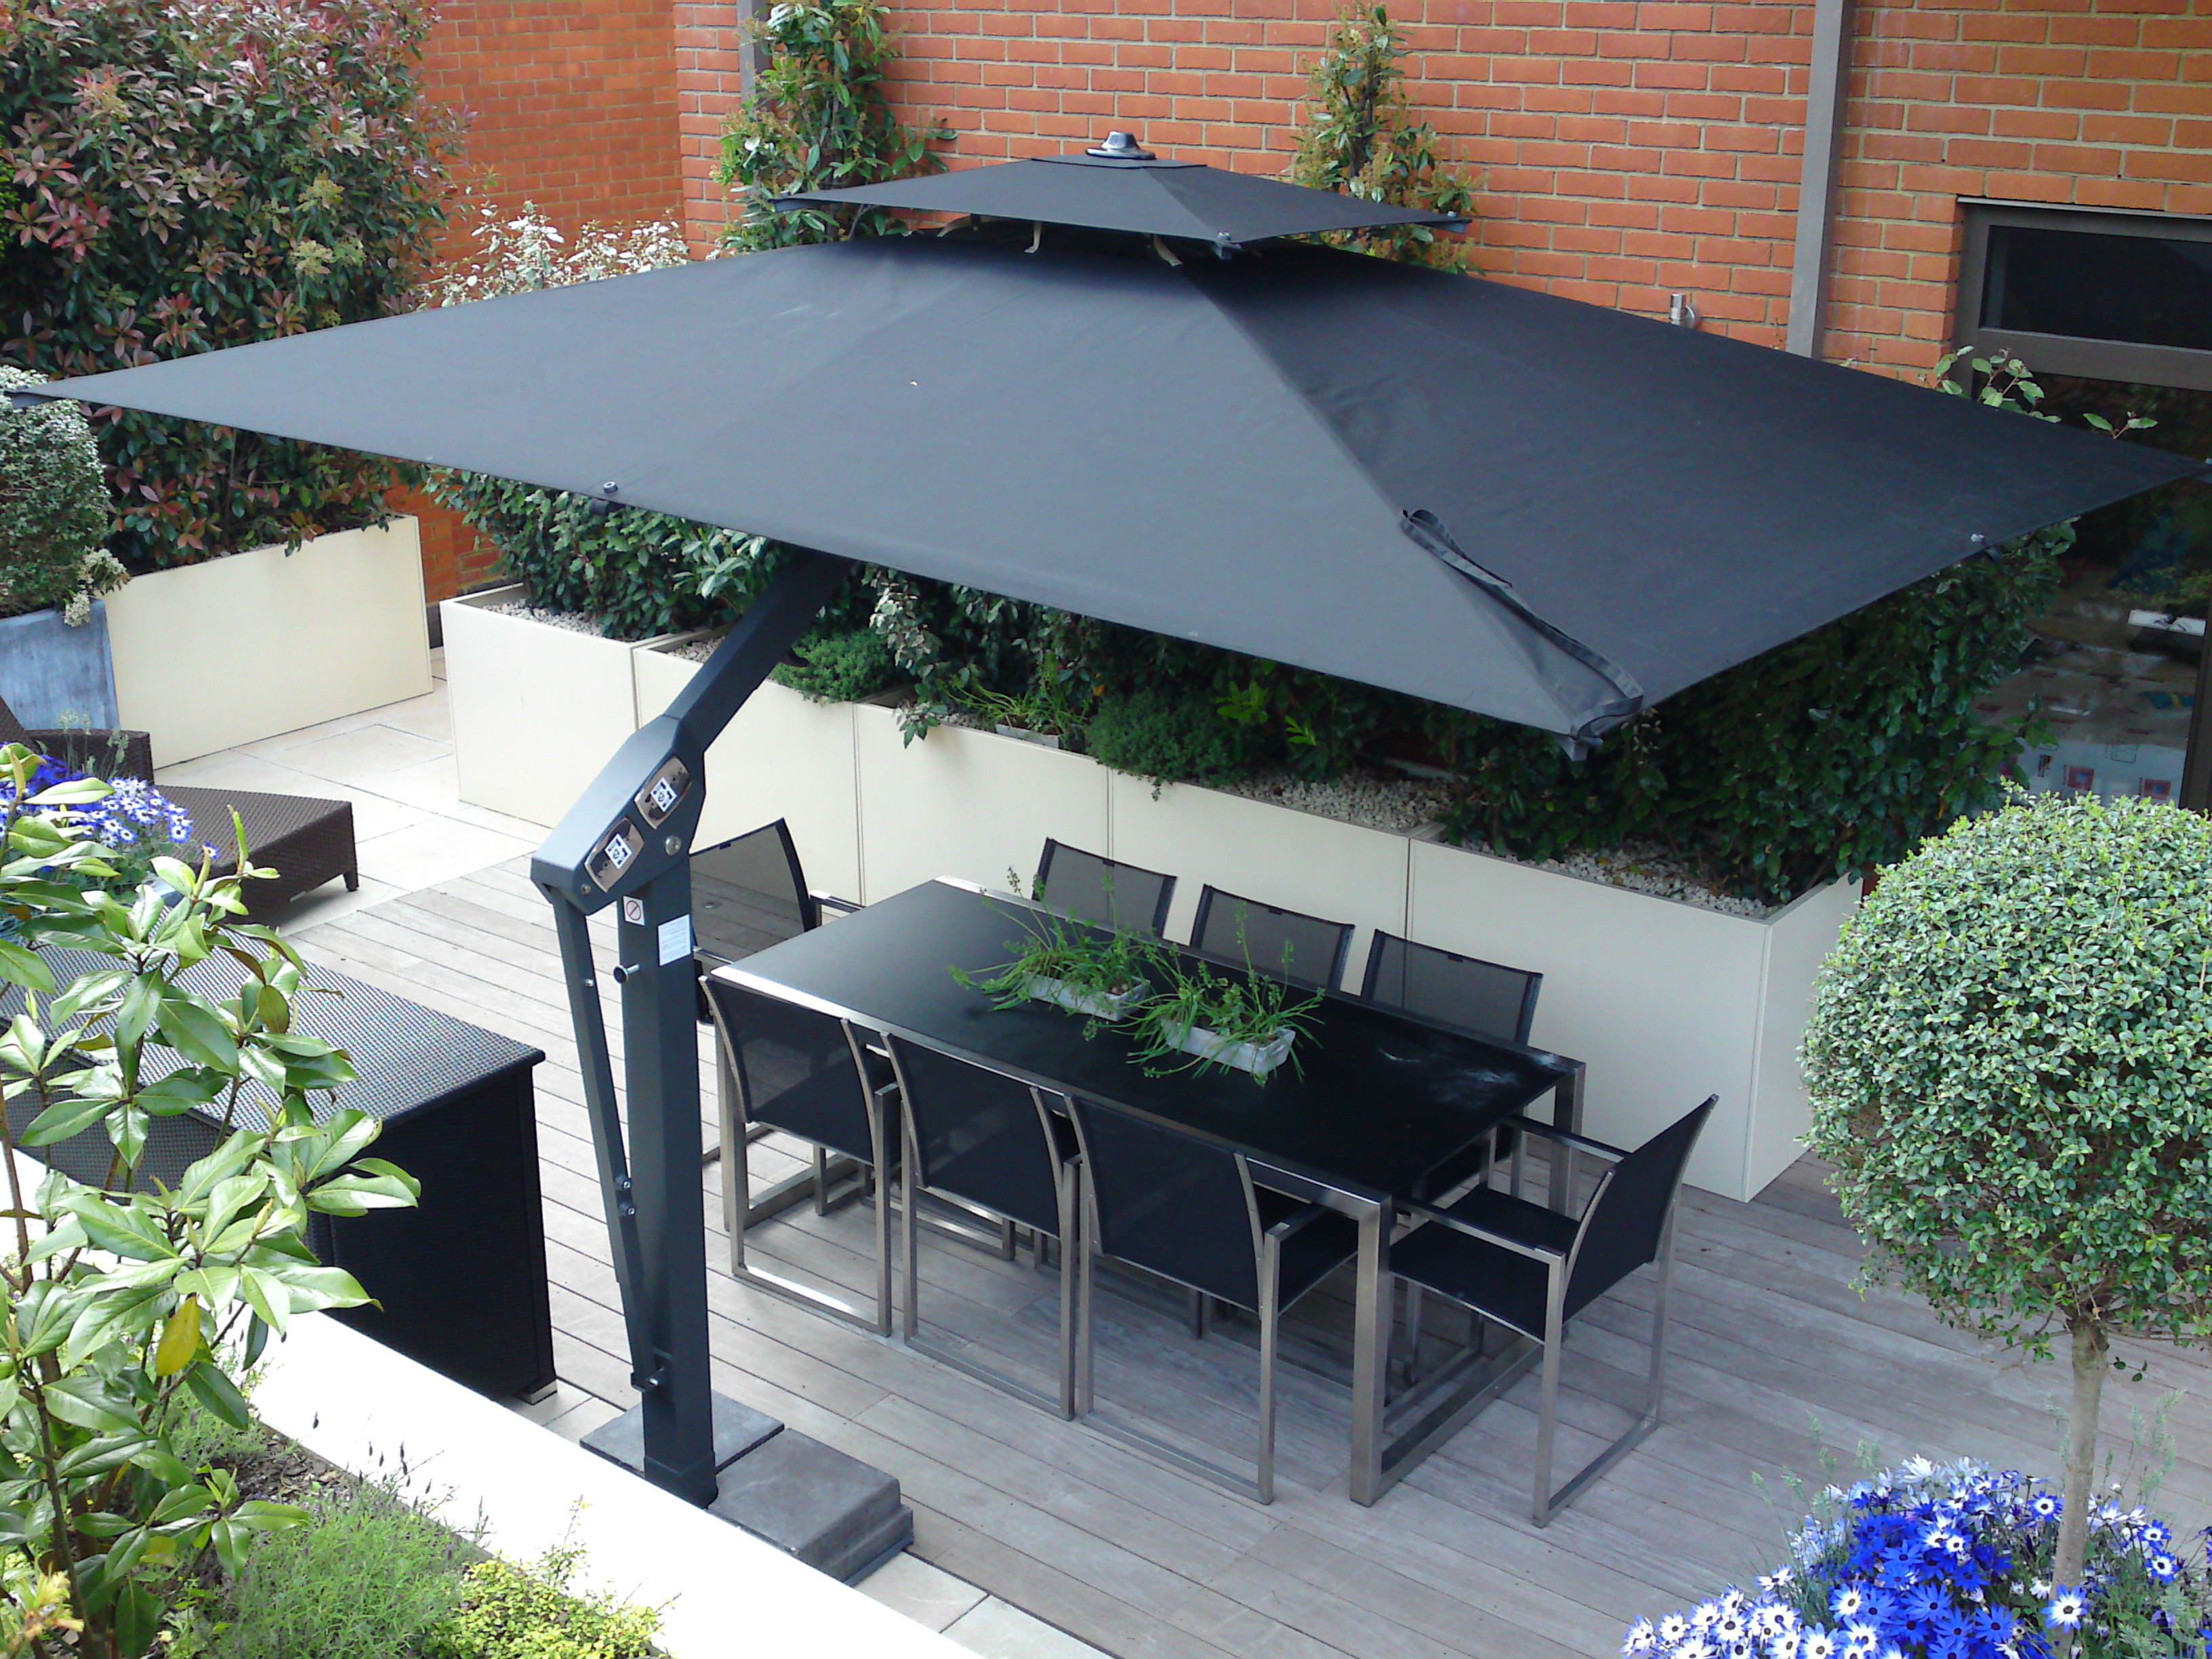 Italian Market Umbrellas Regarding Latest Poggesi – Specialists In Impressive Large Umbrellas (View 20 of 20)